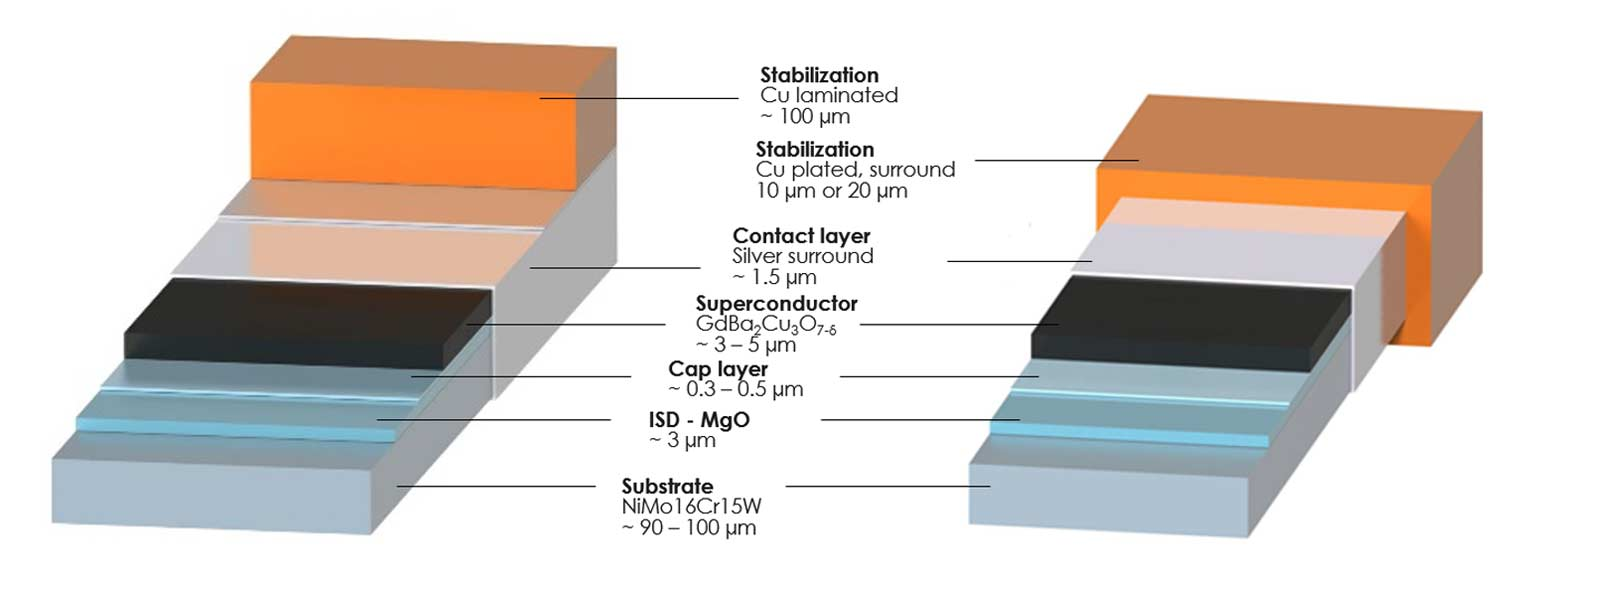 Depending on your application, THEVA offers various stabilizations for the superconductor.